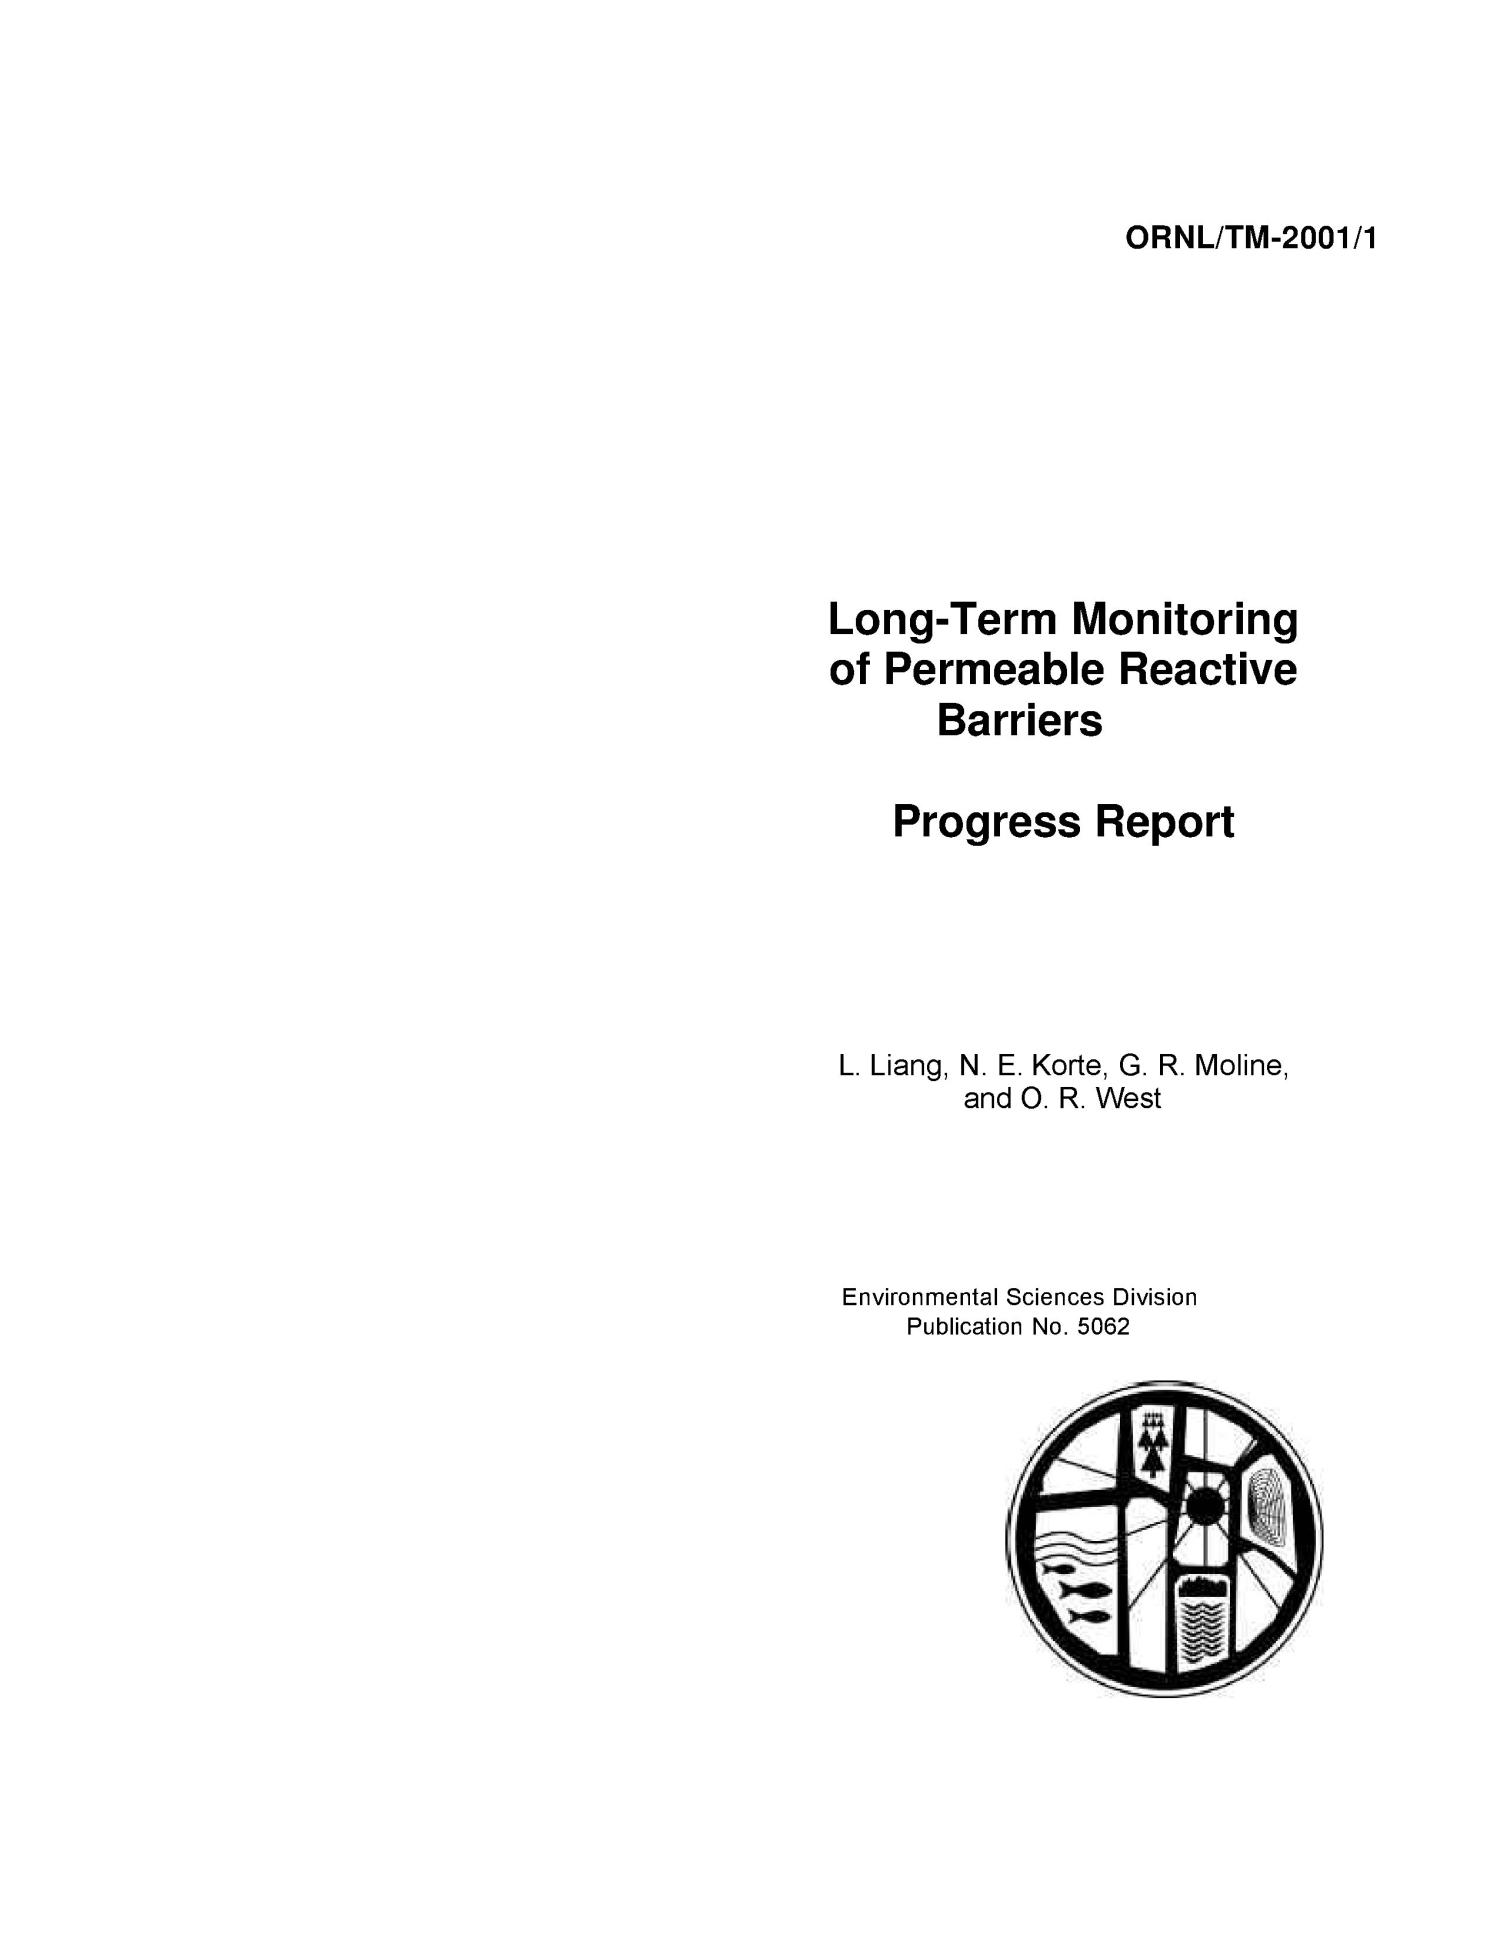 Long-Term Monitoring of Permeable Reactive Barriers - Progress Report                                                                                                      [Sequence #]: 1 of 64